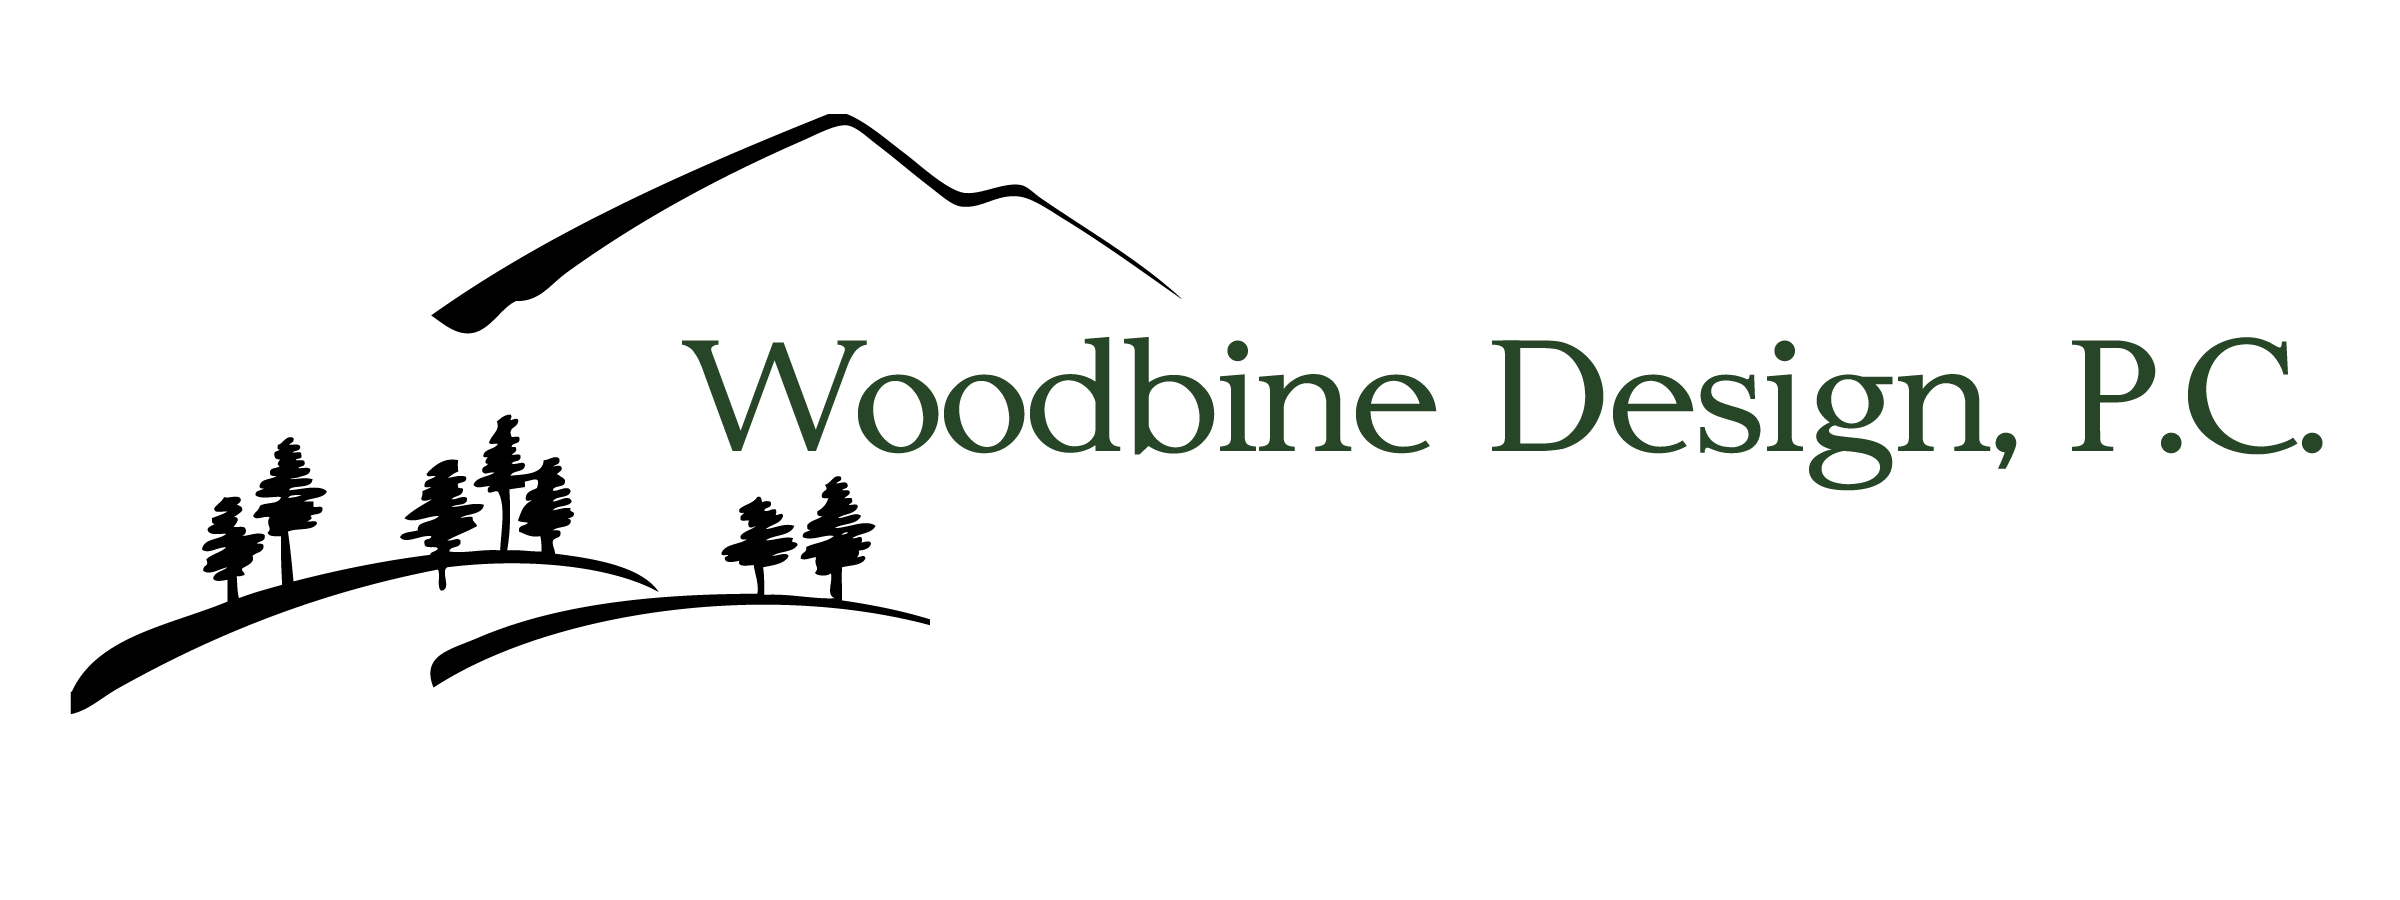 Woodbine Design, P.C. | Land Planning | Civil Engineering | Landscape Architecture